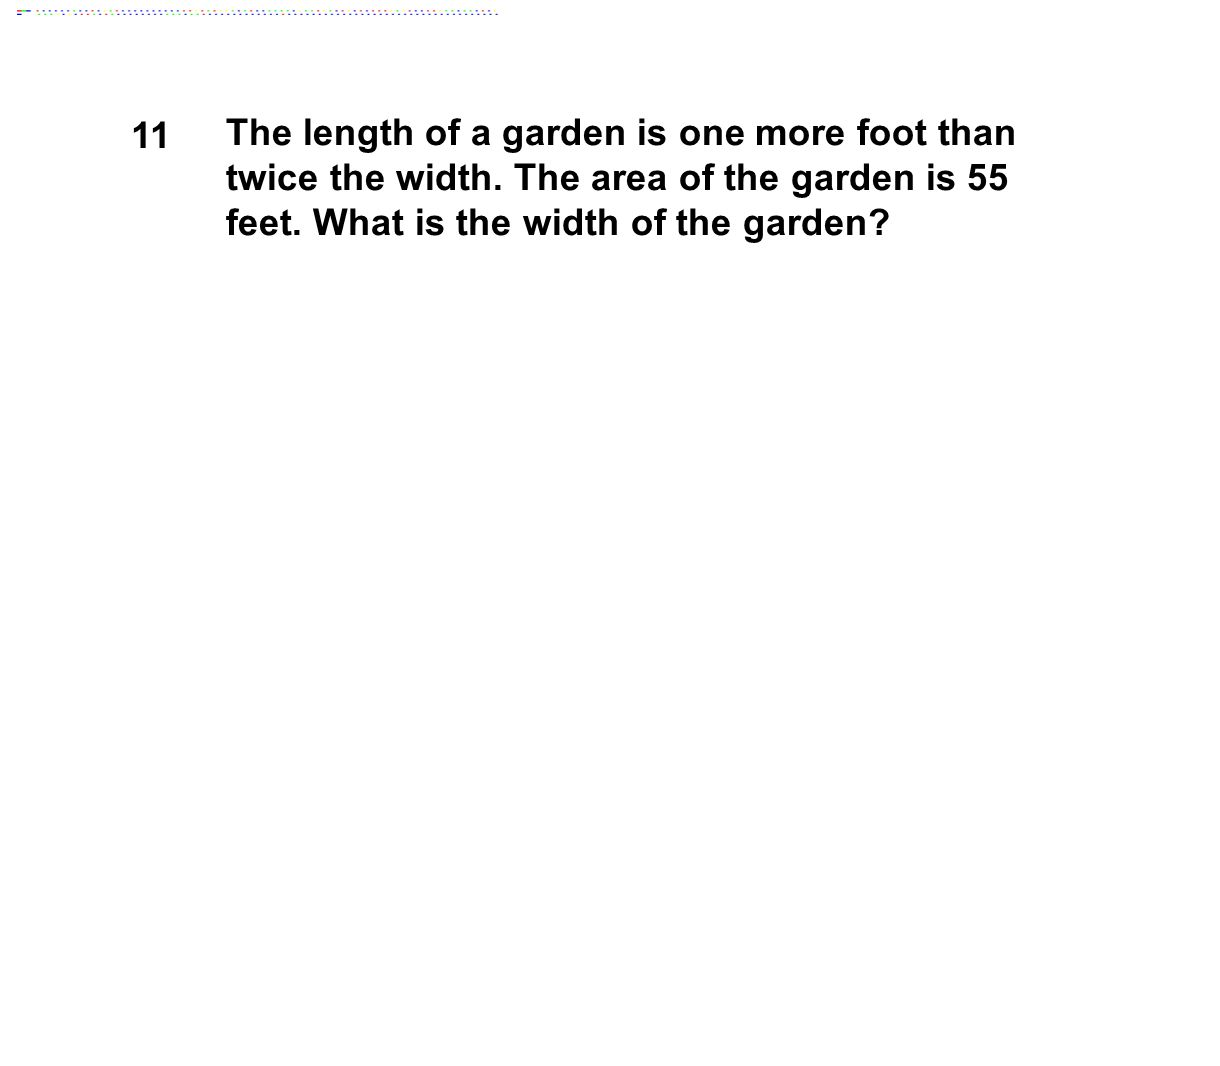 11 The length of a garden is one more foot than twice the width. The area of the garden is 55 feet. What is the width of the garden?